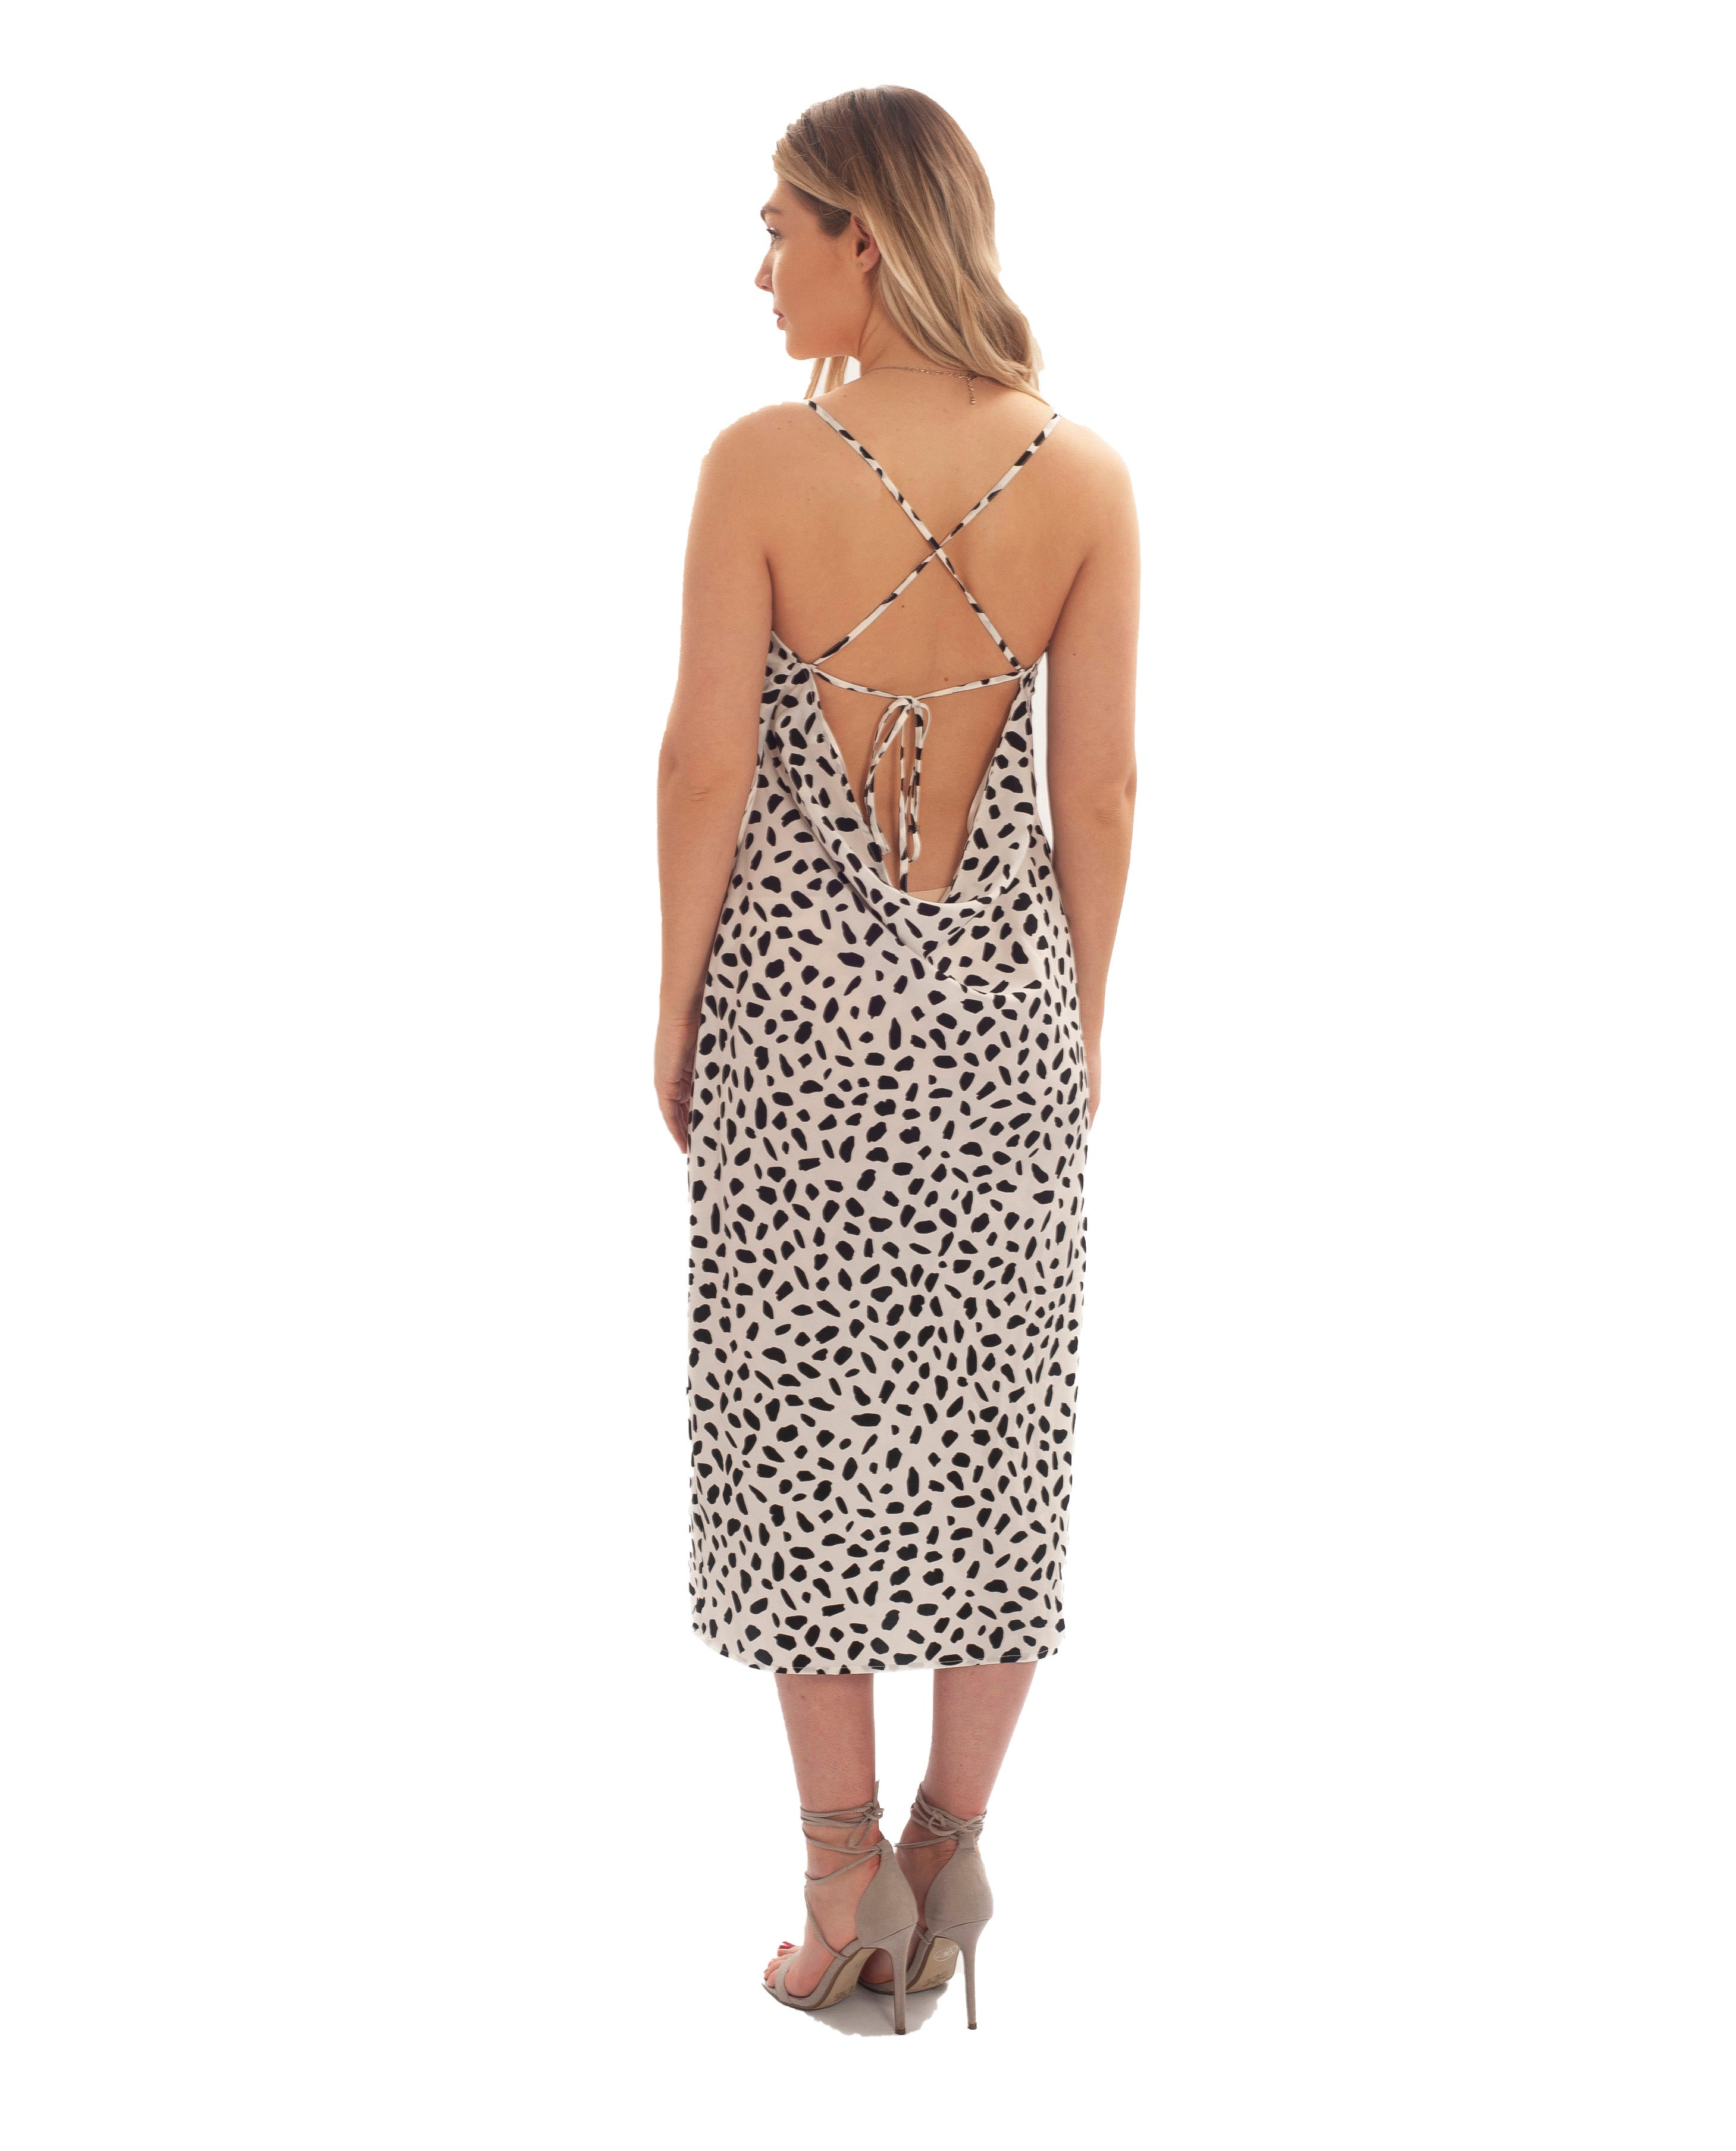 RUNAWAY THE LABEL MONOCHROME SLIP DRESS